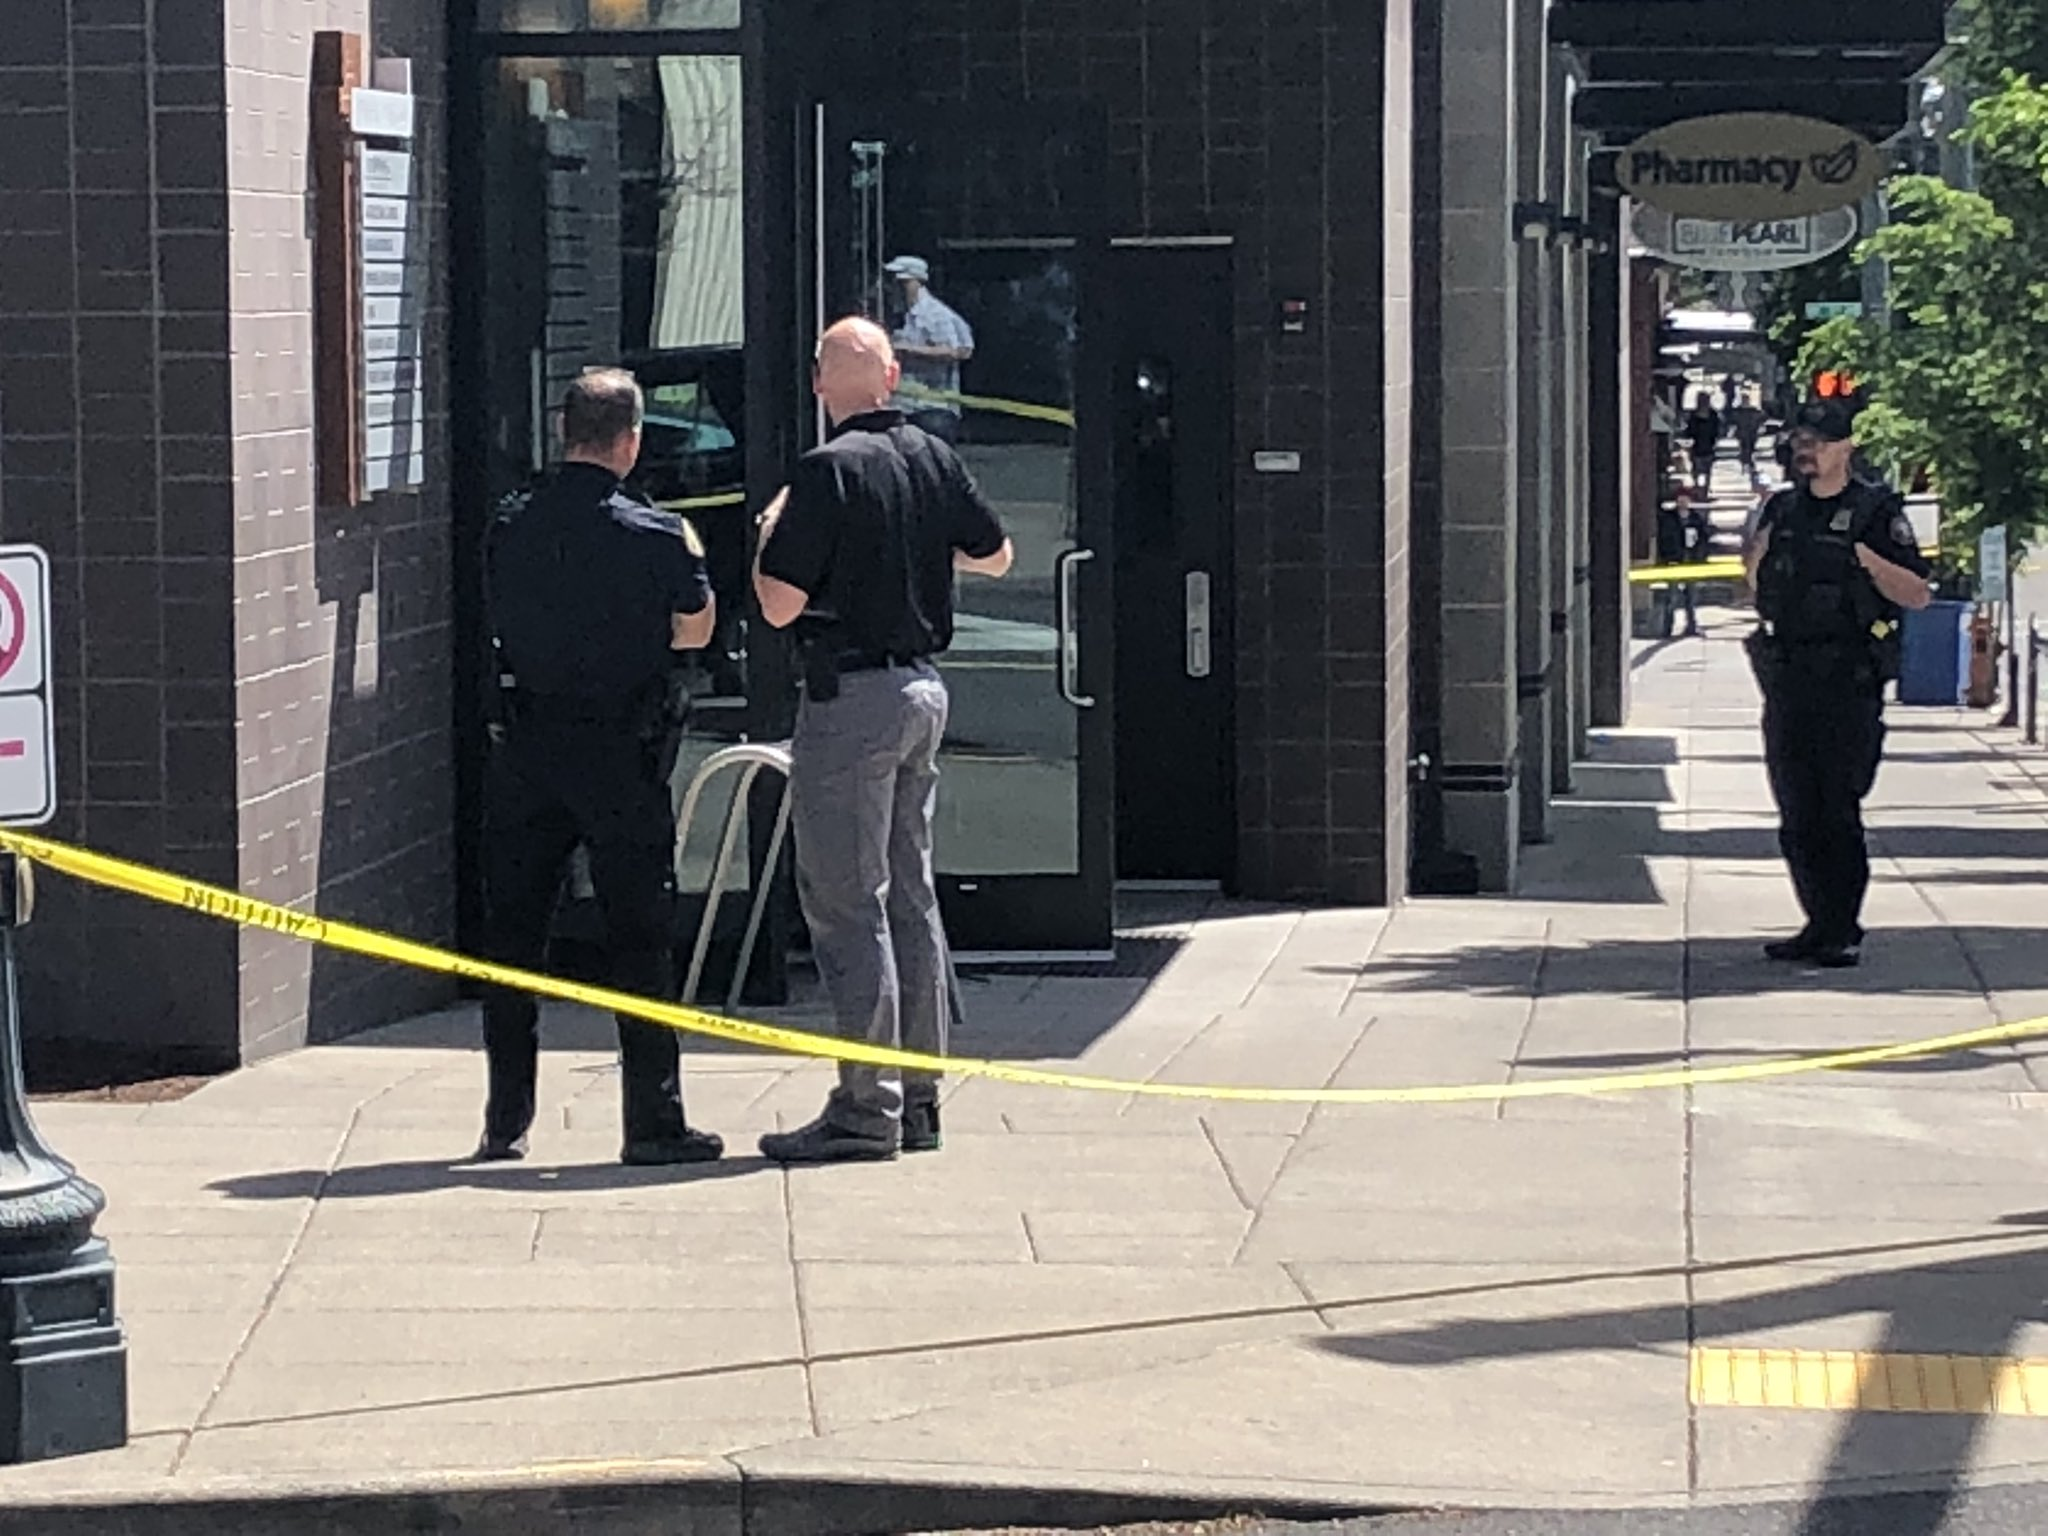 Portland Police Bureau was involved in a shooting inside The Lovejoy building in Portland's Pearl District on June 9, 2019. Photo by Scott Perry